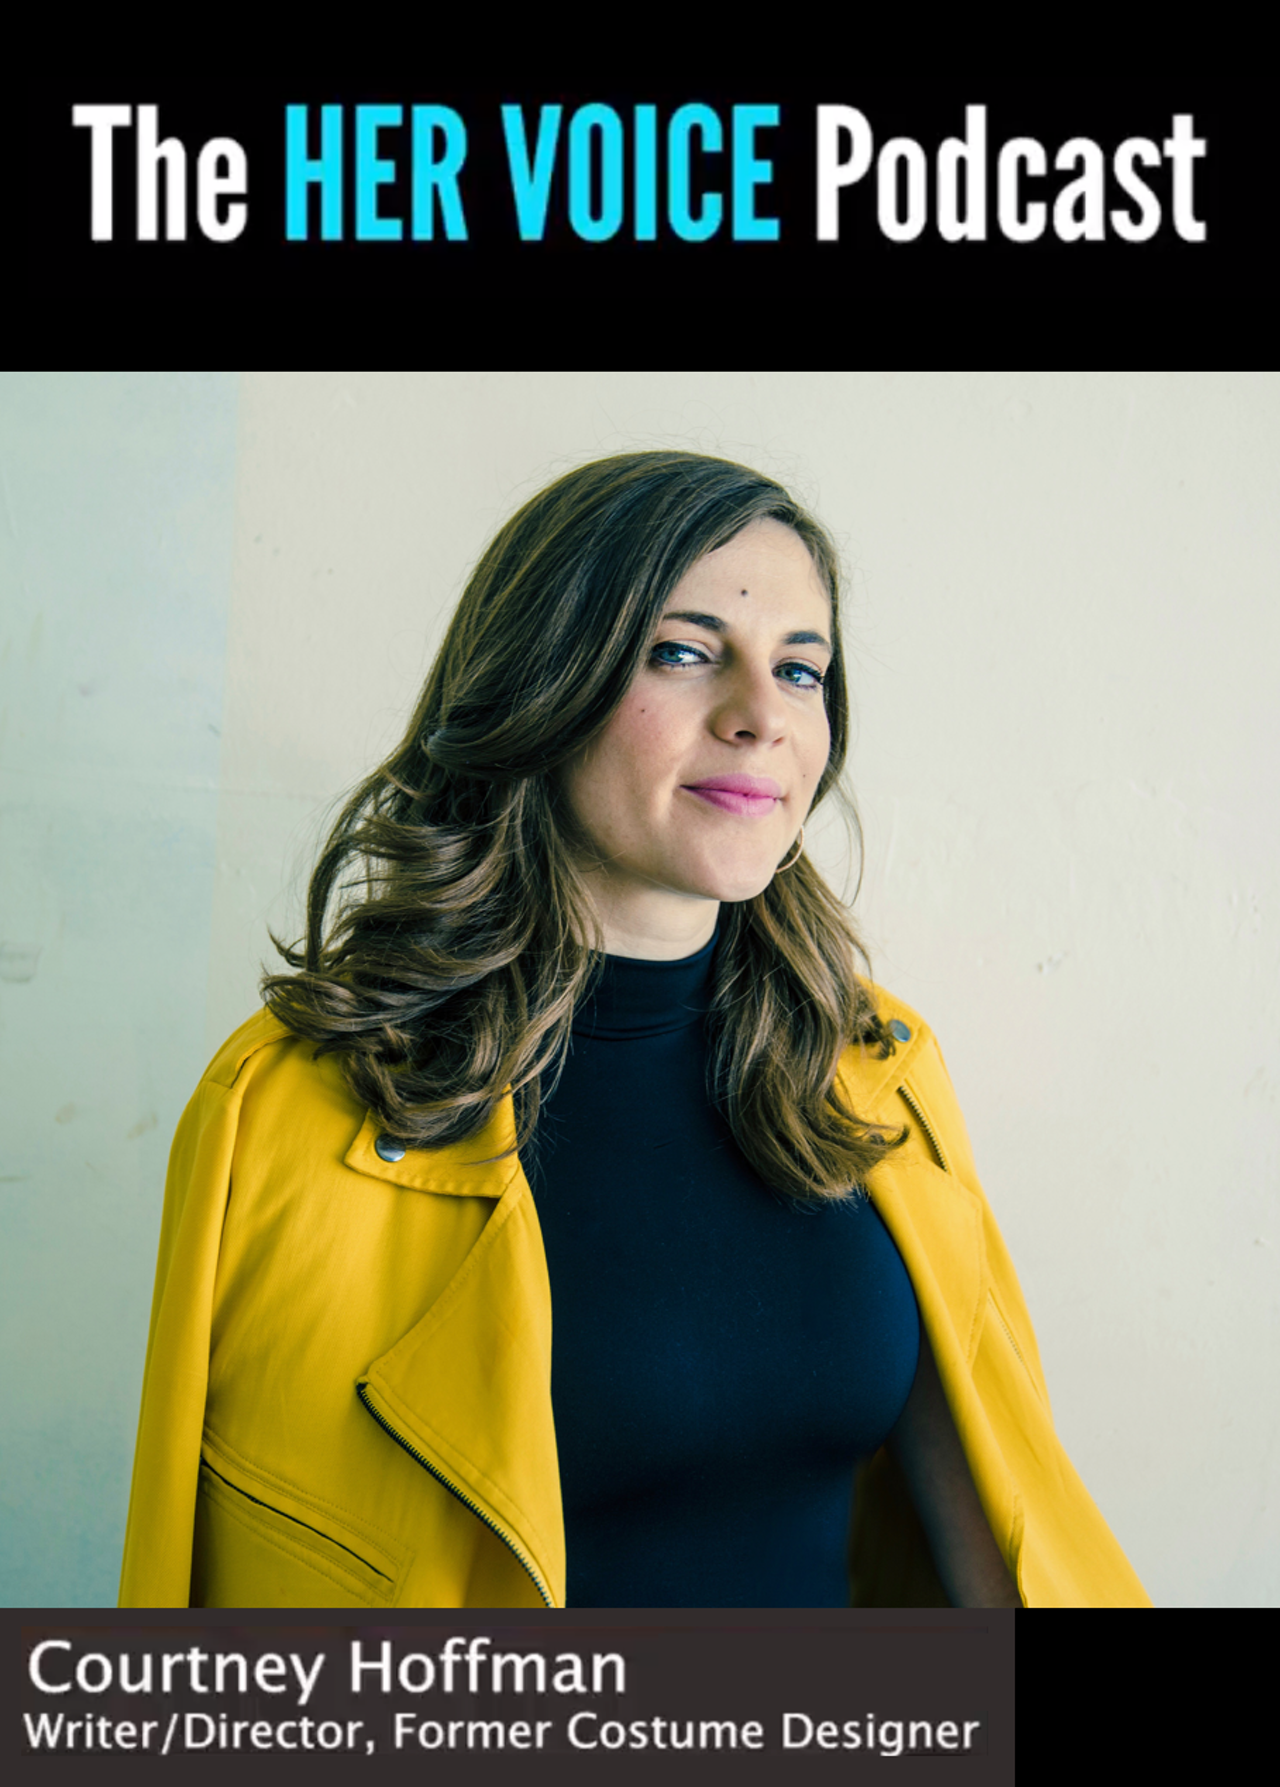 Courtney Hoffman drops in at 'Her Voice' podcast